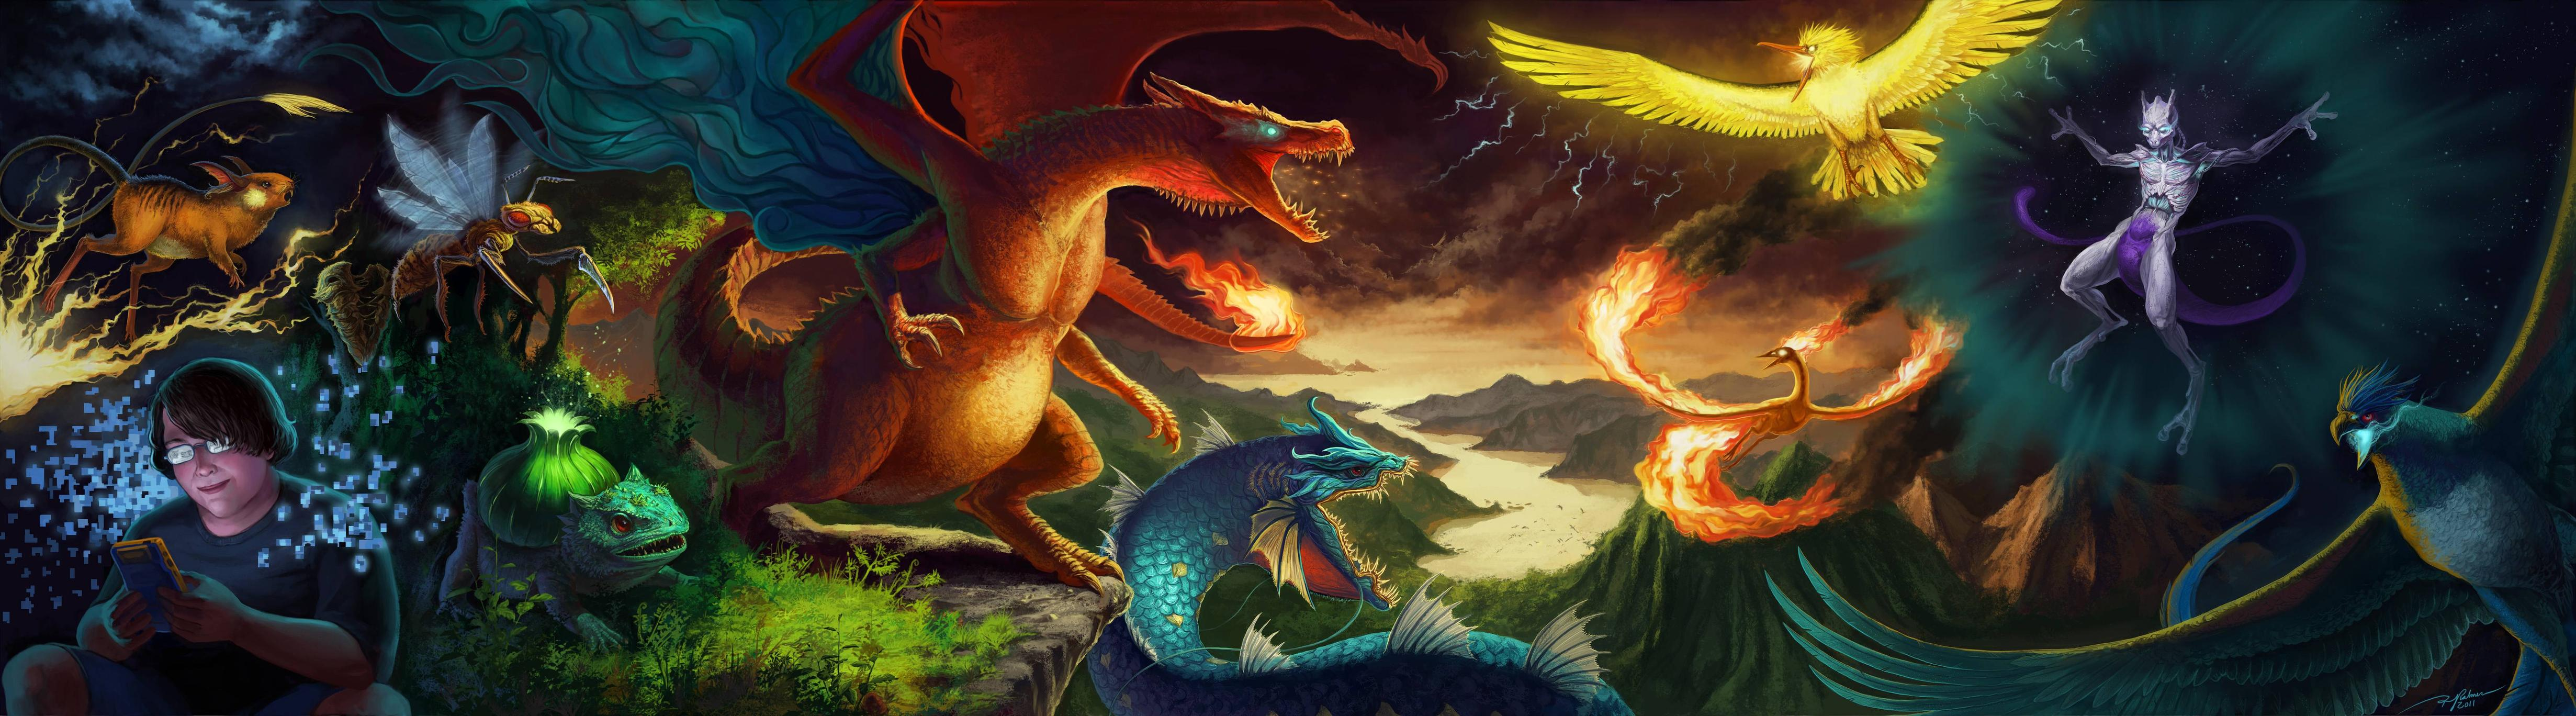 4923x1368 Epic Pokemon Art - ID: 52884 - Art Abyss